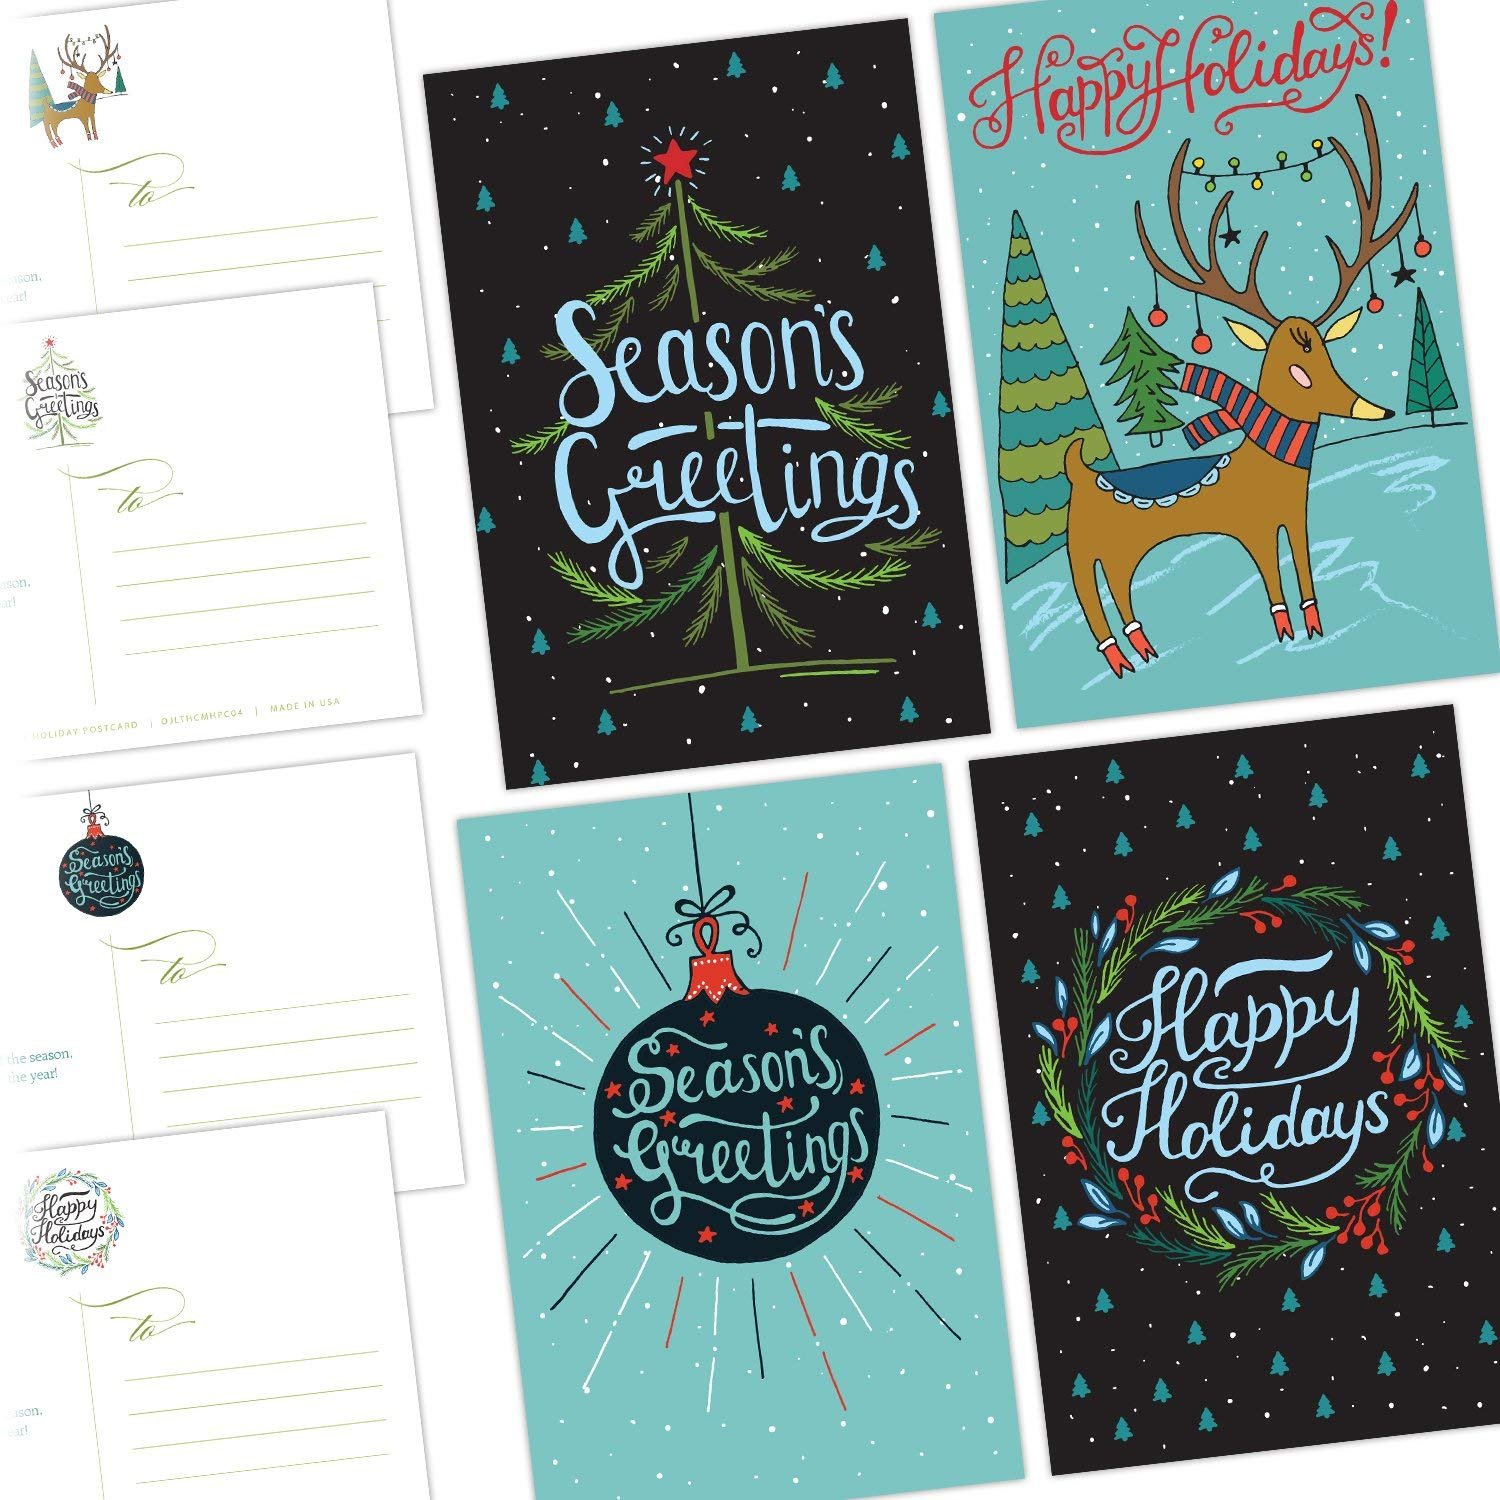 Christmas Card, Christmas Card Suppliers and Manufacturers at ...